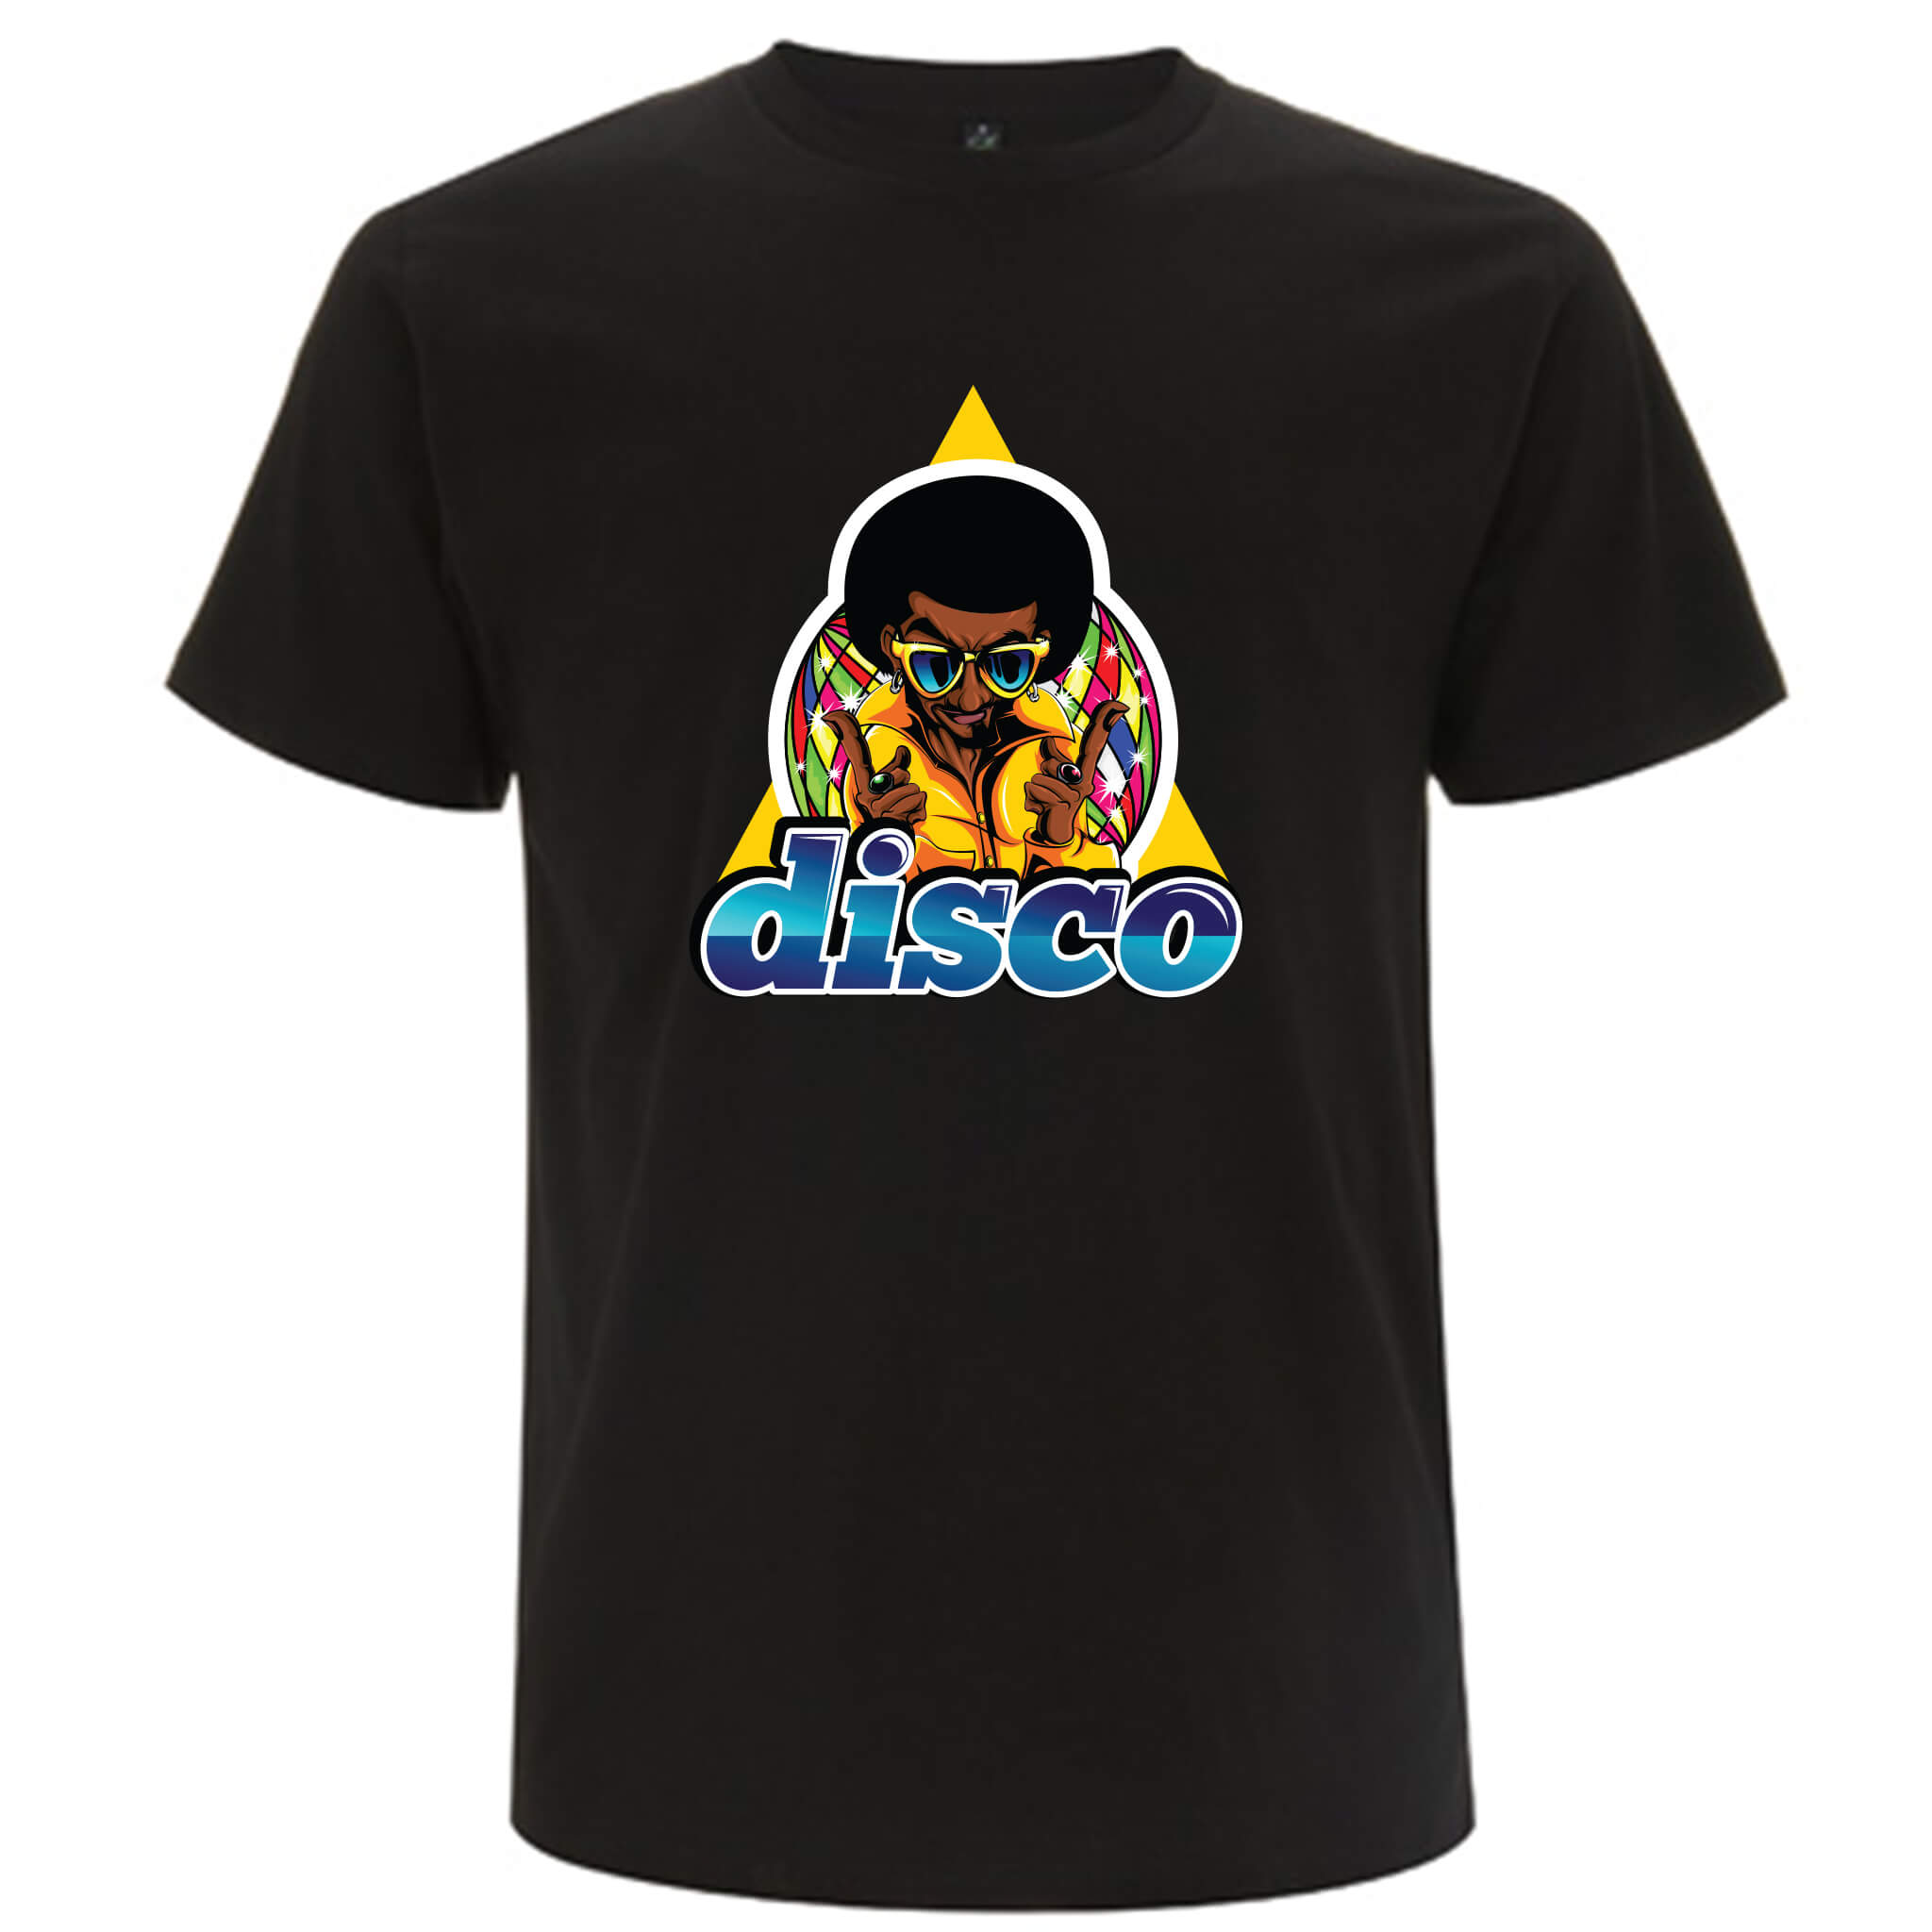 Musica Disco - T-shirt Uomo - T-Shirt by Fol The Brand